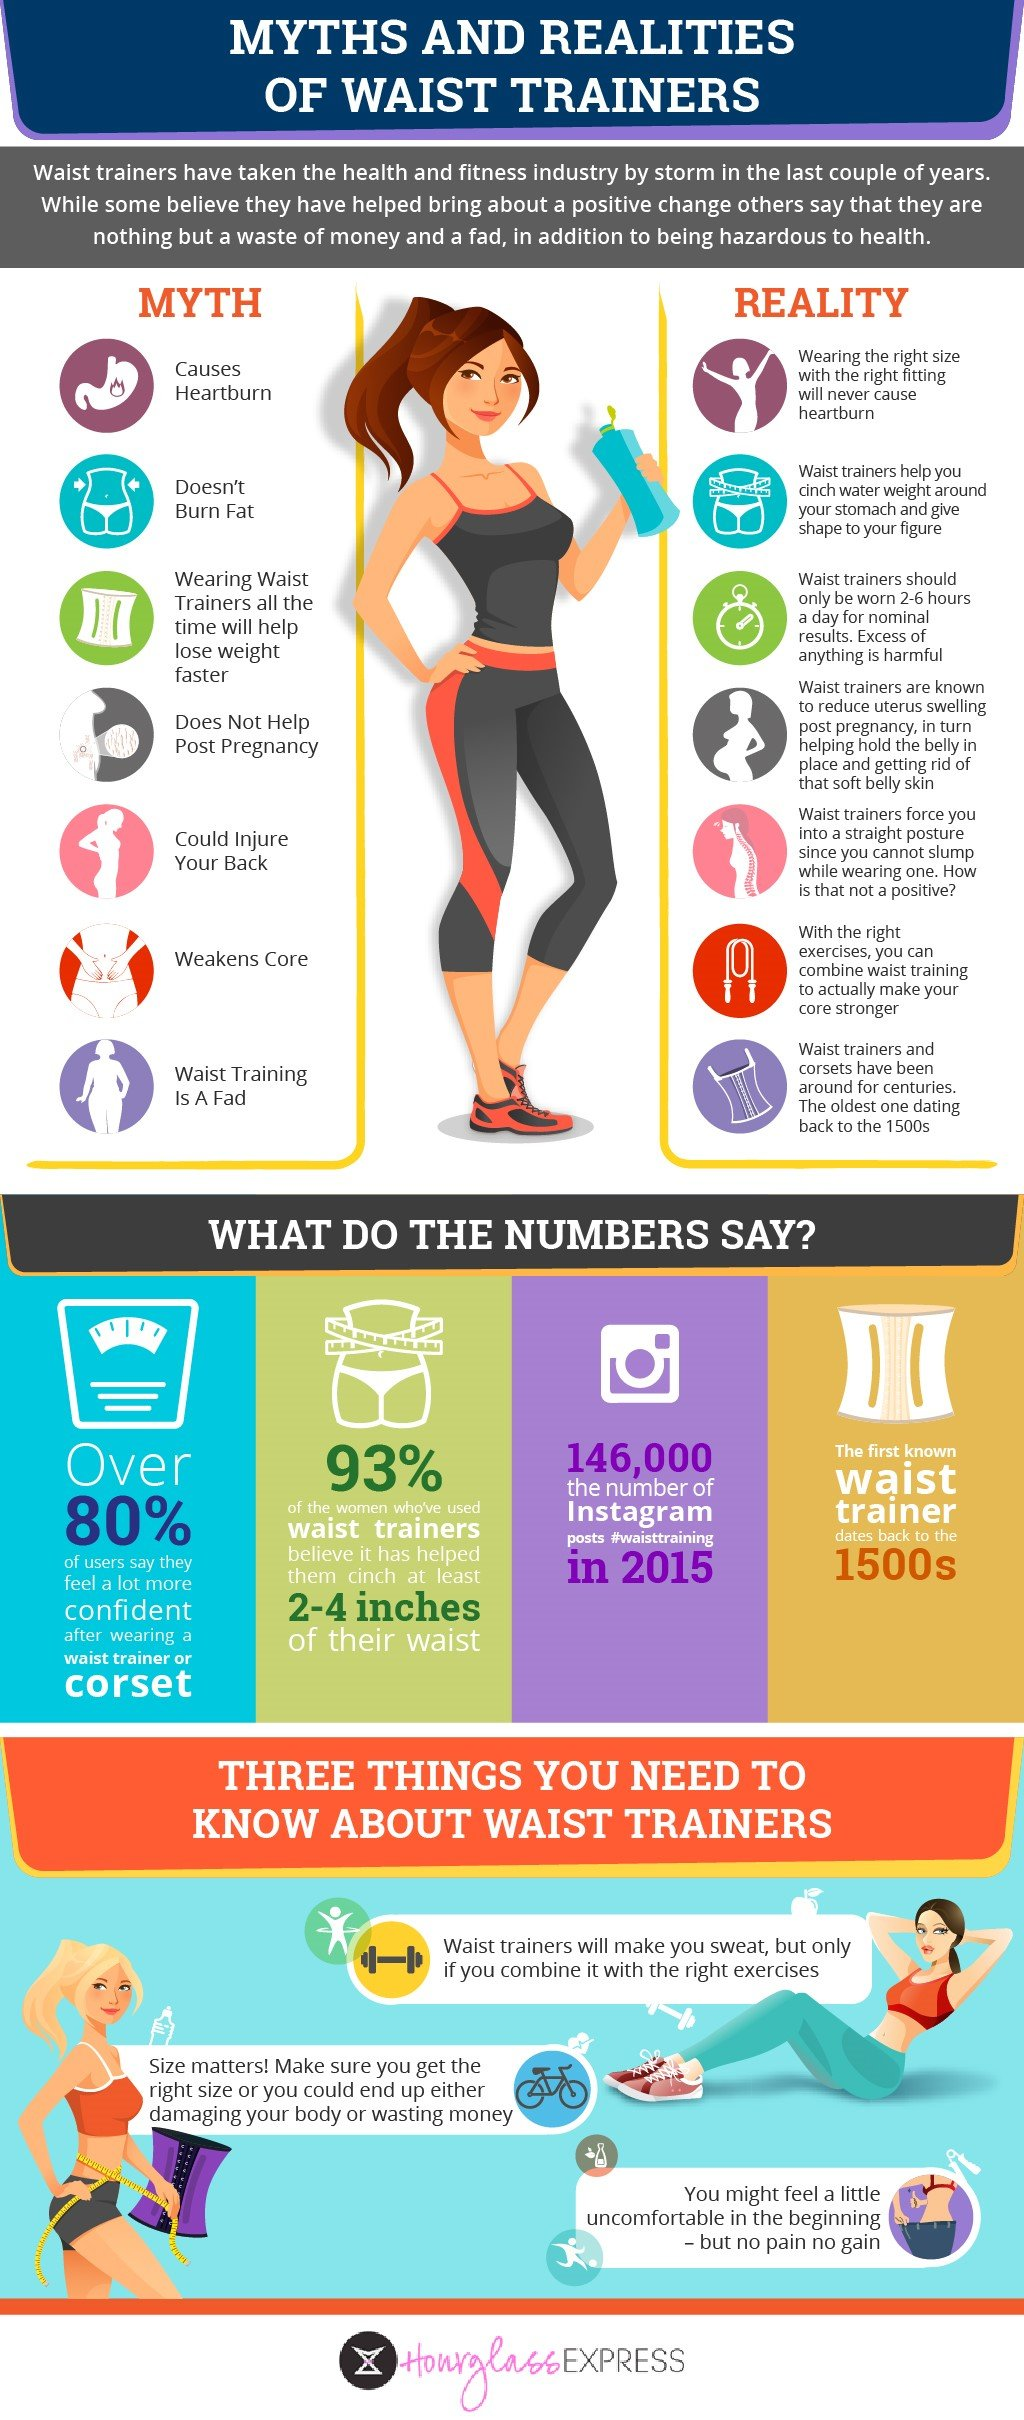 myths-realities-waist-trainers-infographic-plaza